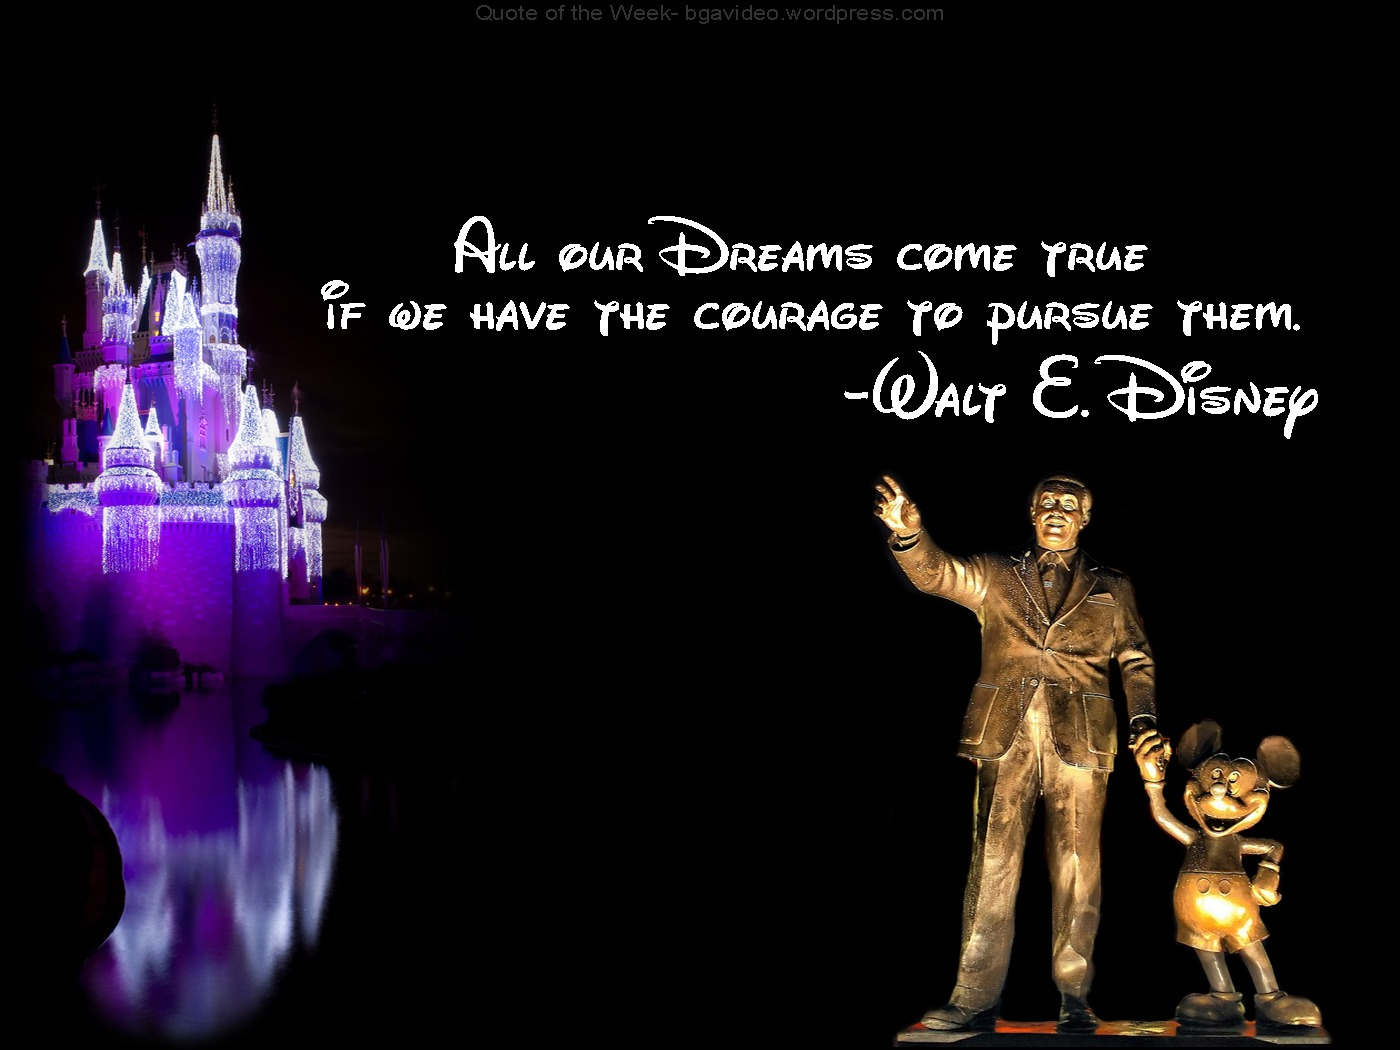 Walt disney courage quotes